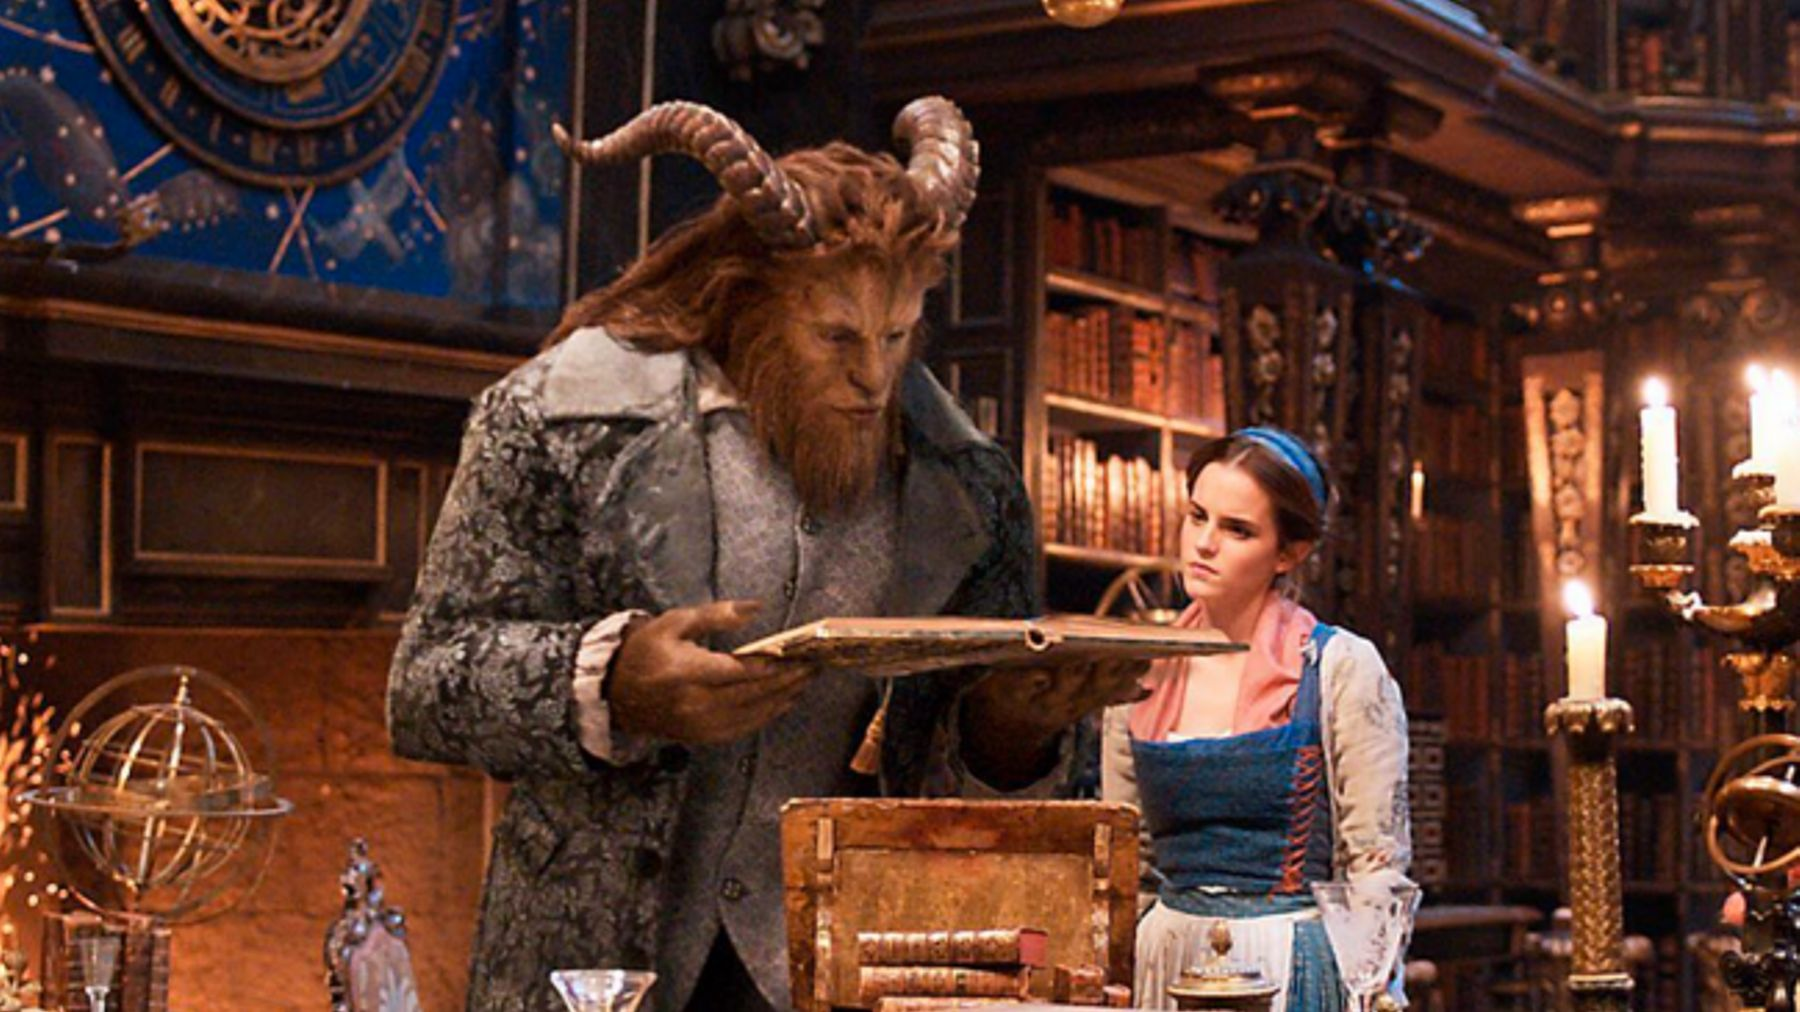 The Beauty And The Beast Cast Take The Ultimate Disney Quiz